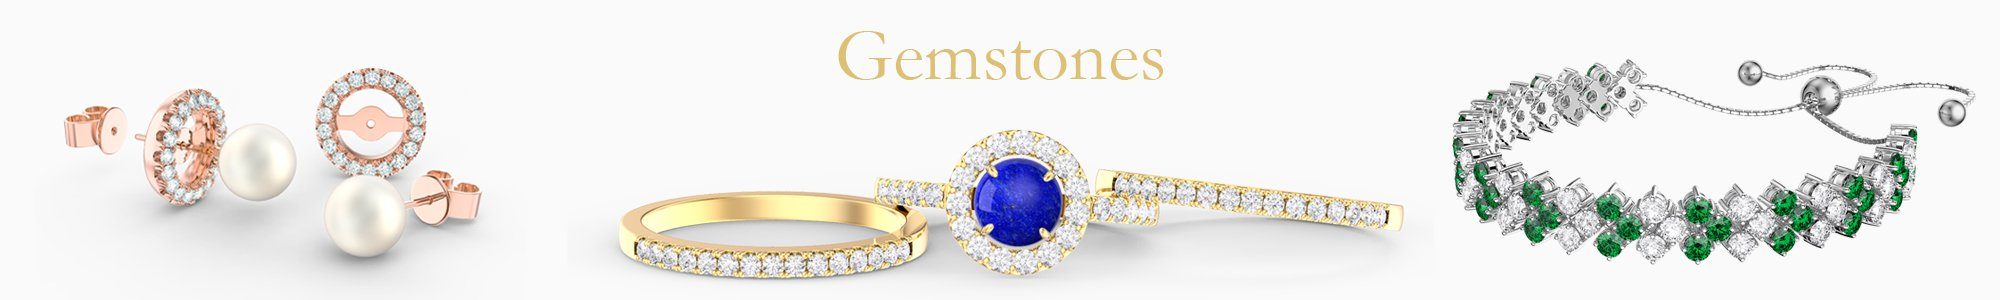 Gemstone Jewellery - from precious gemstones to Diamonds. From Silver to 18ct Gold.